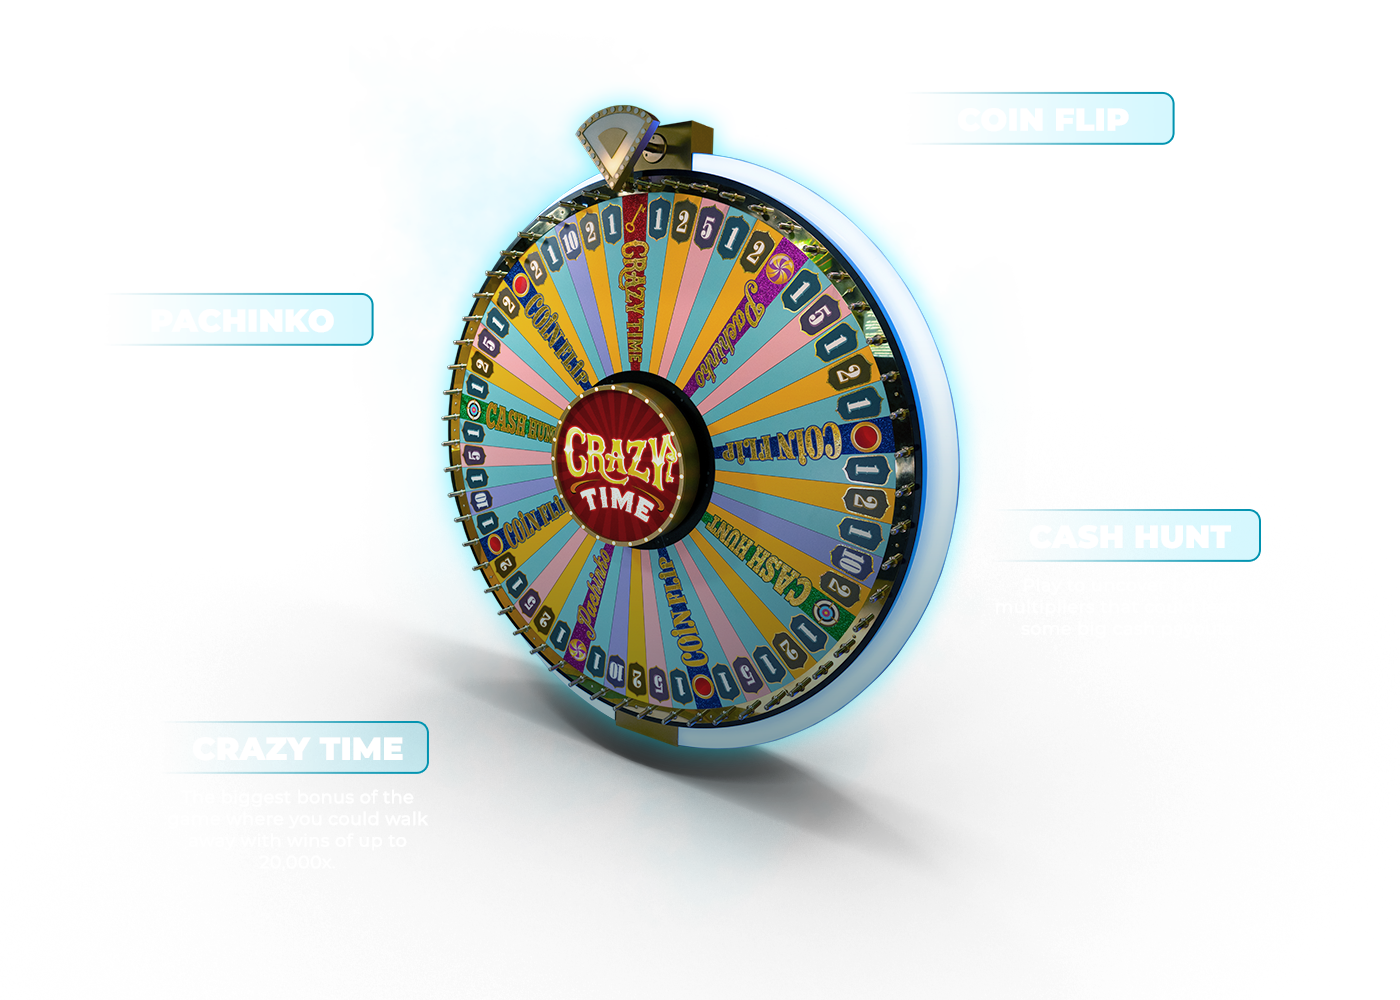 Crazy Time Prize Wheel